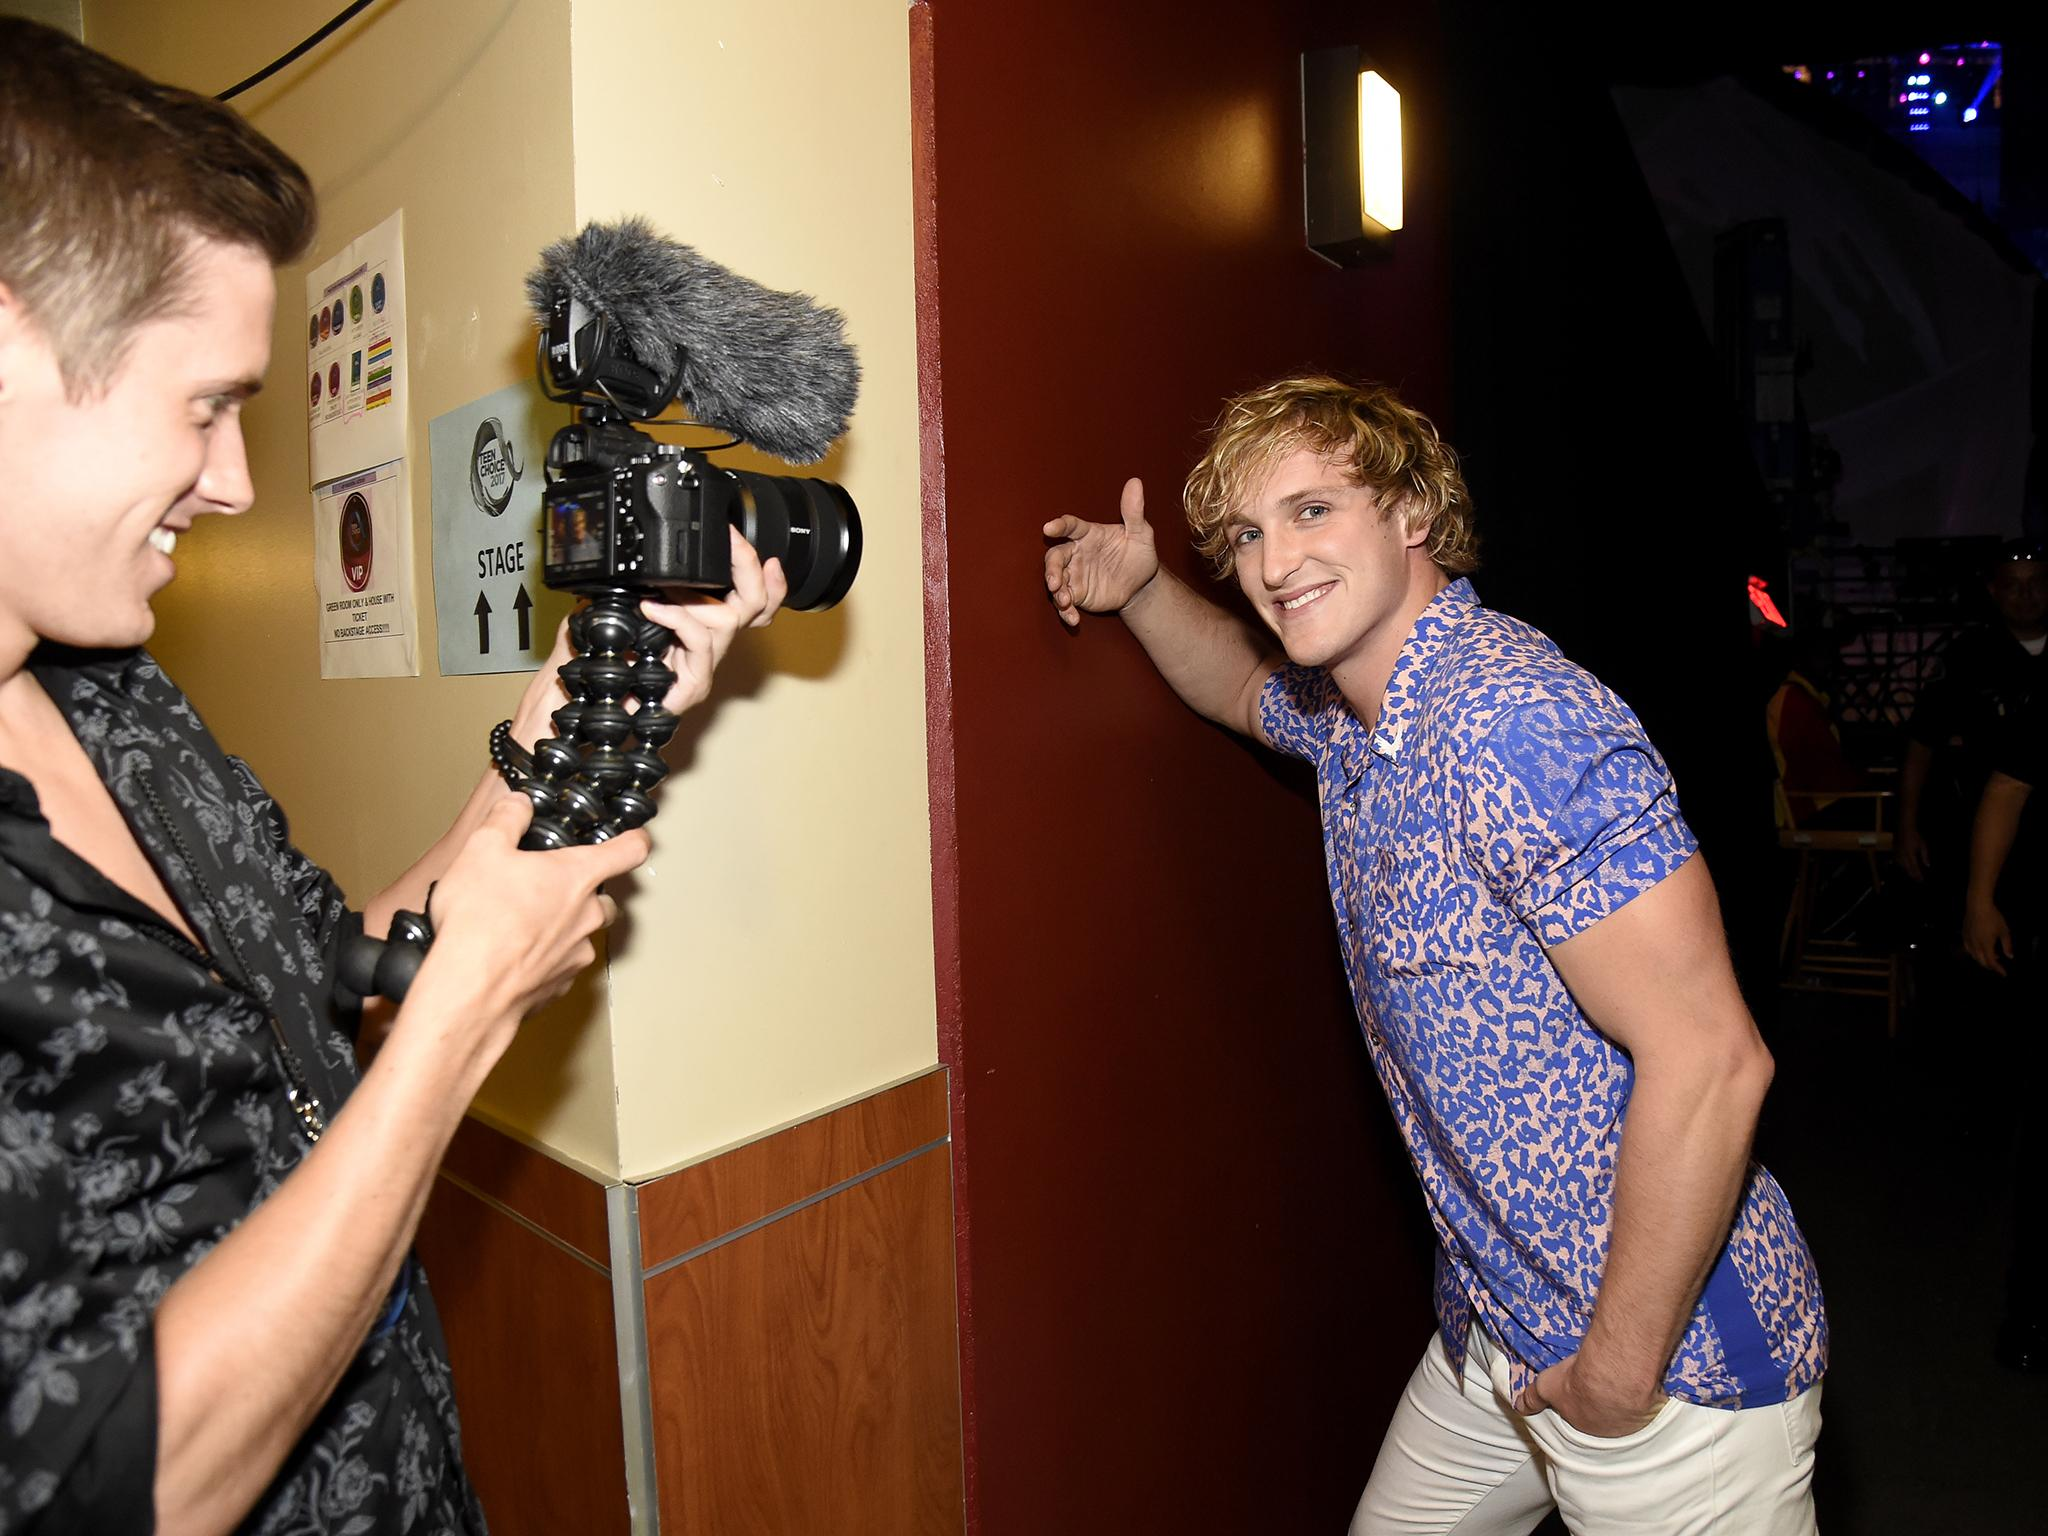 Logan Paul: Following the YouTube controversy, should social media have the same regulations as journalism?